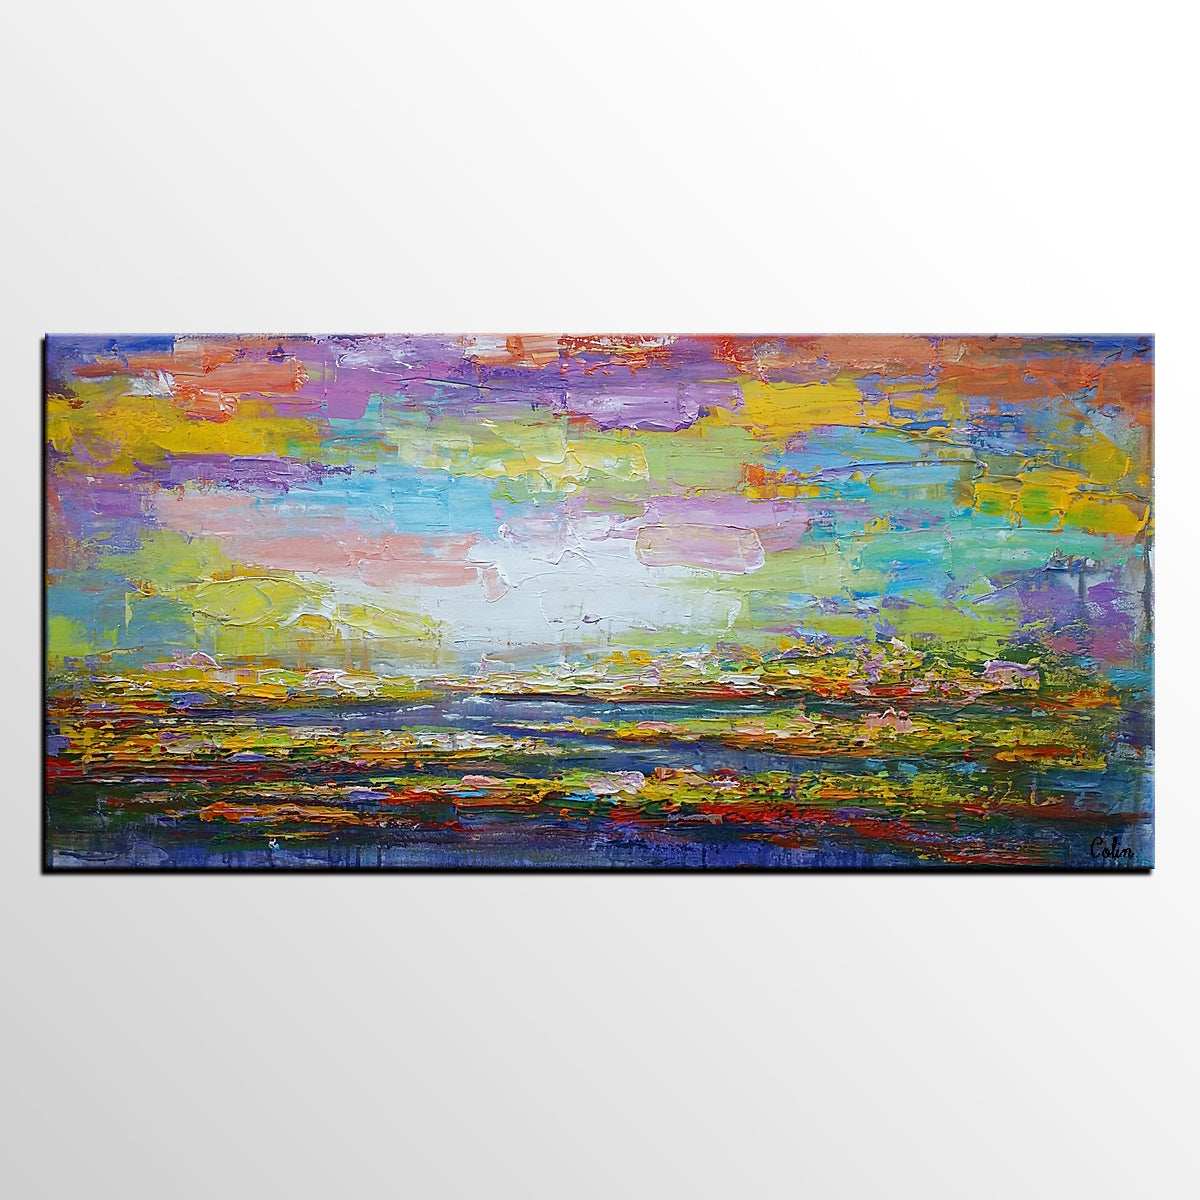 Canvas Wall Art, Abstract Landscape Painting, Large Art, Canvas Art, Wall Art, Original Artwork, Canvas Painting, Abstract Art 154